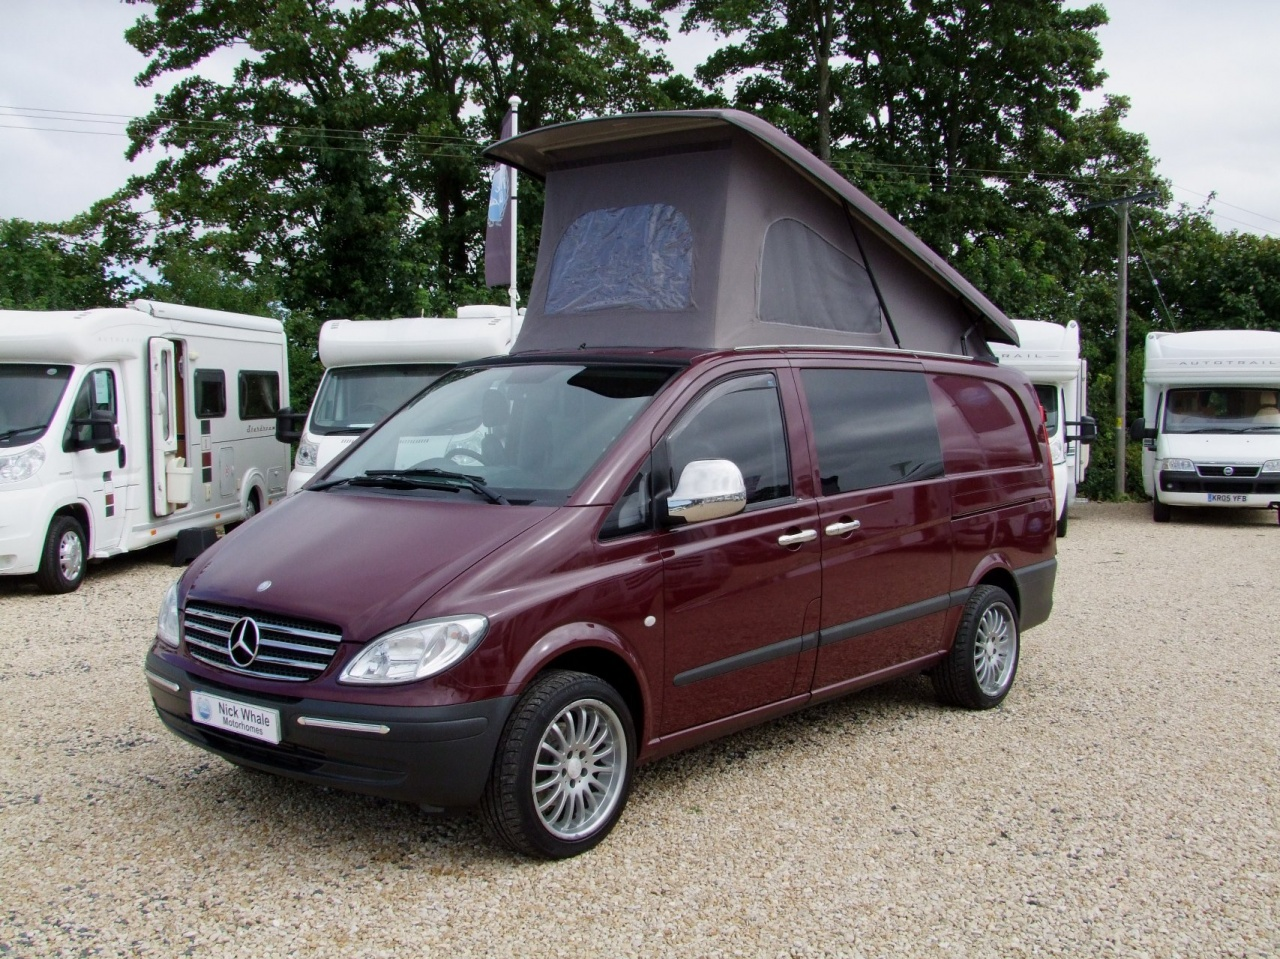 camper conversion based upon mercedes vito 111 cdi nick whale sports cars. Black Bedroom Furniture Sets. Home Design Ideas